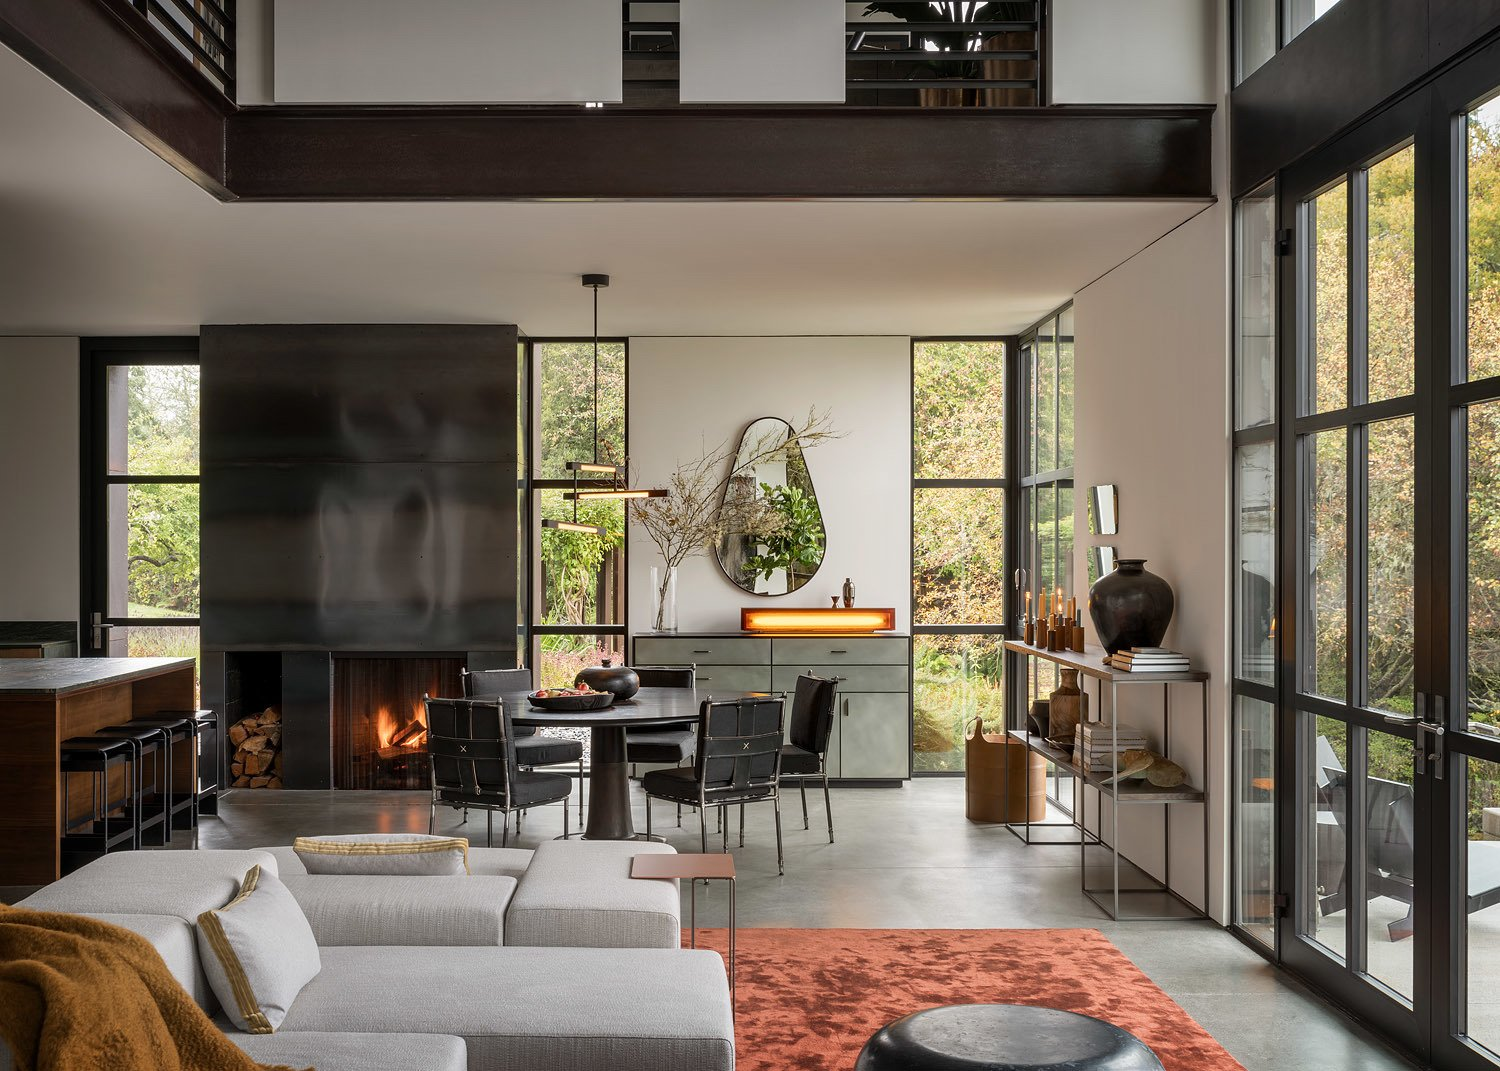 Dining, Rug, Chair, Ceiling, Standard Layout, Concrete, Accent, Wood Burning, Table, and Pendant A steel fireplace lies between the dining space and open kitchen.   Best Dining Accent Ceiling Pendant Photos from False Bay Home and Writer's Cabin